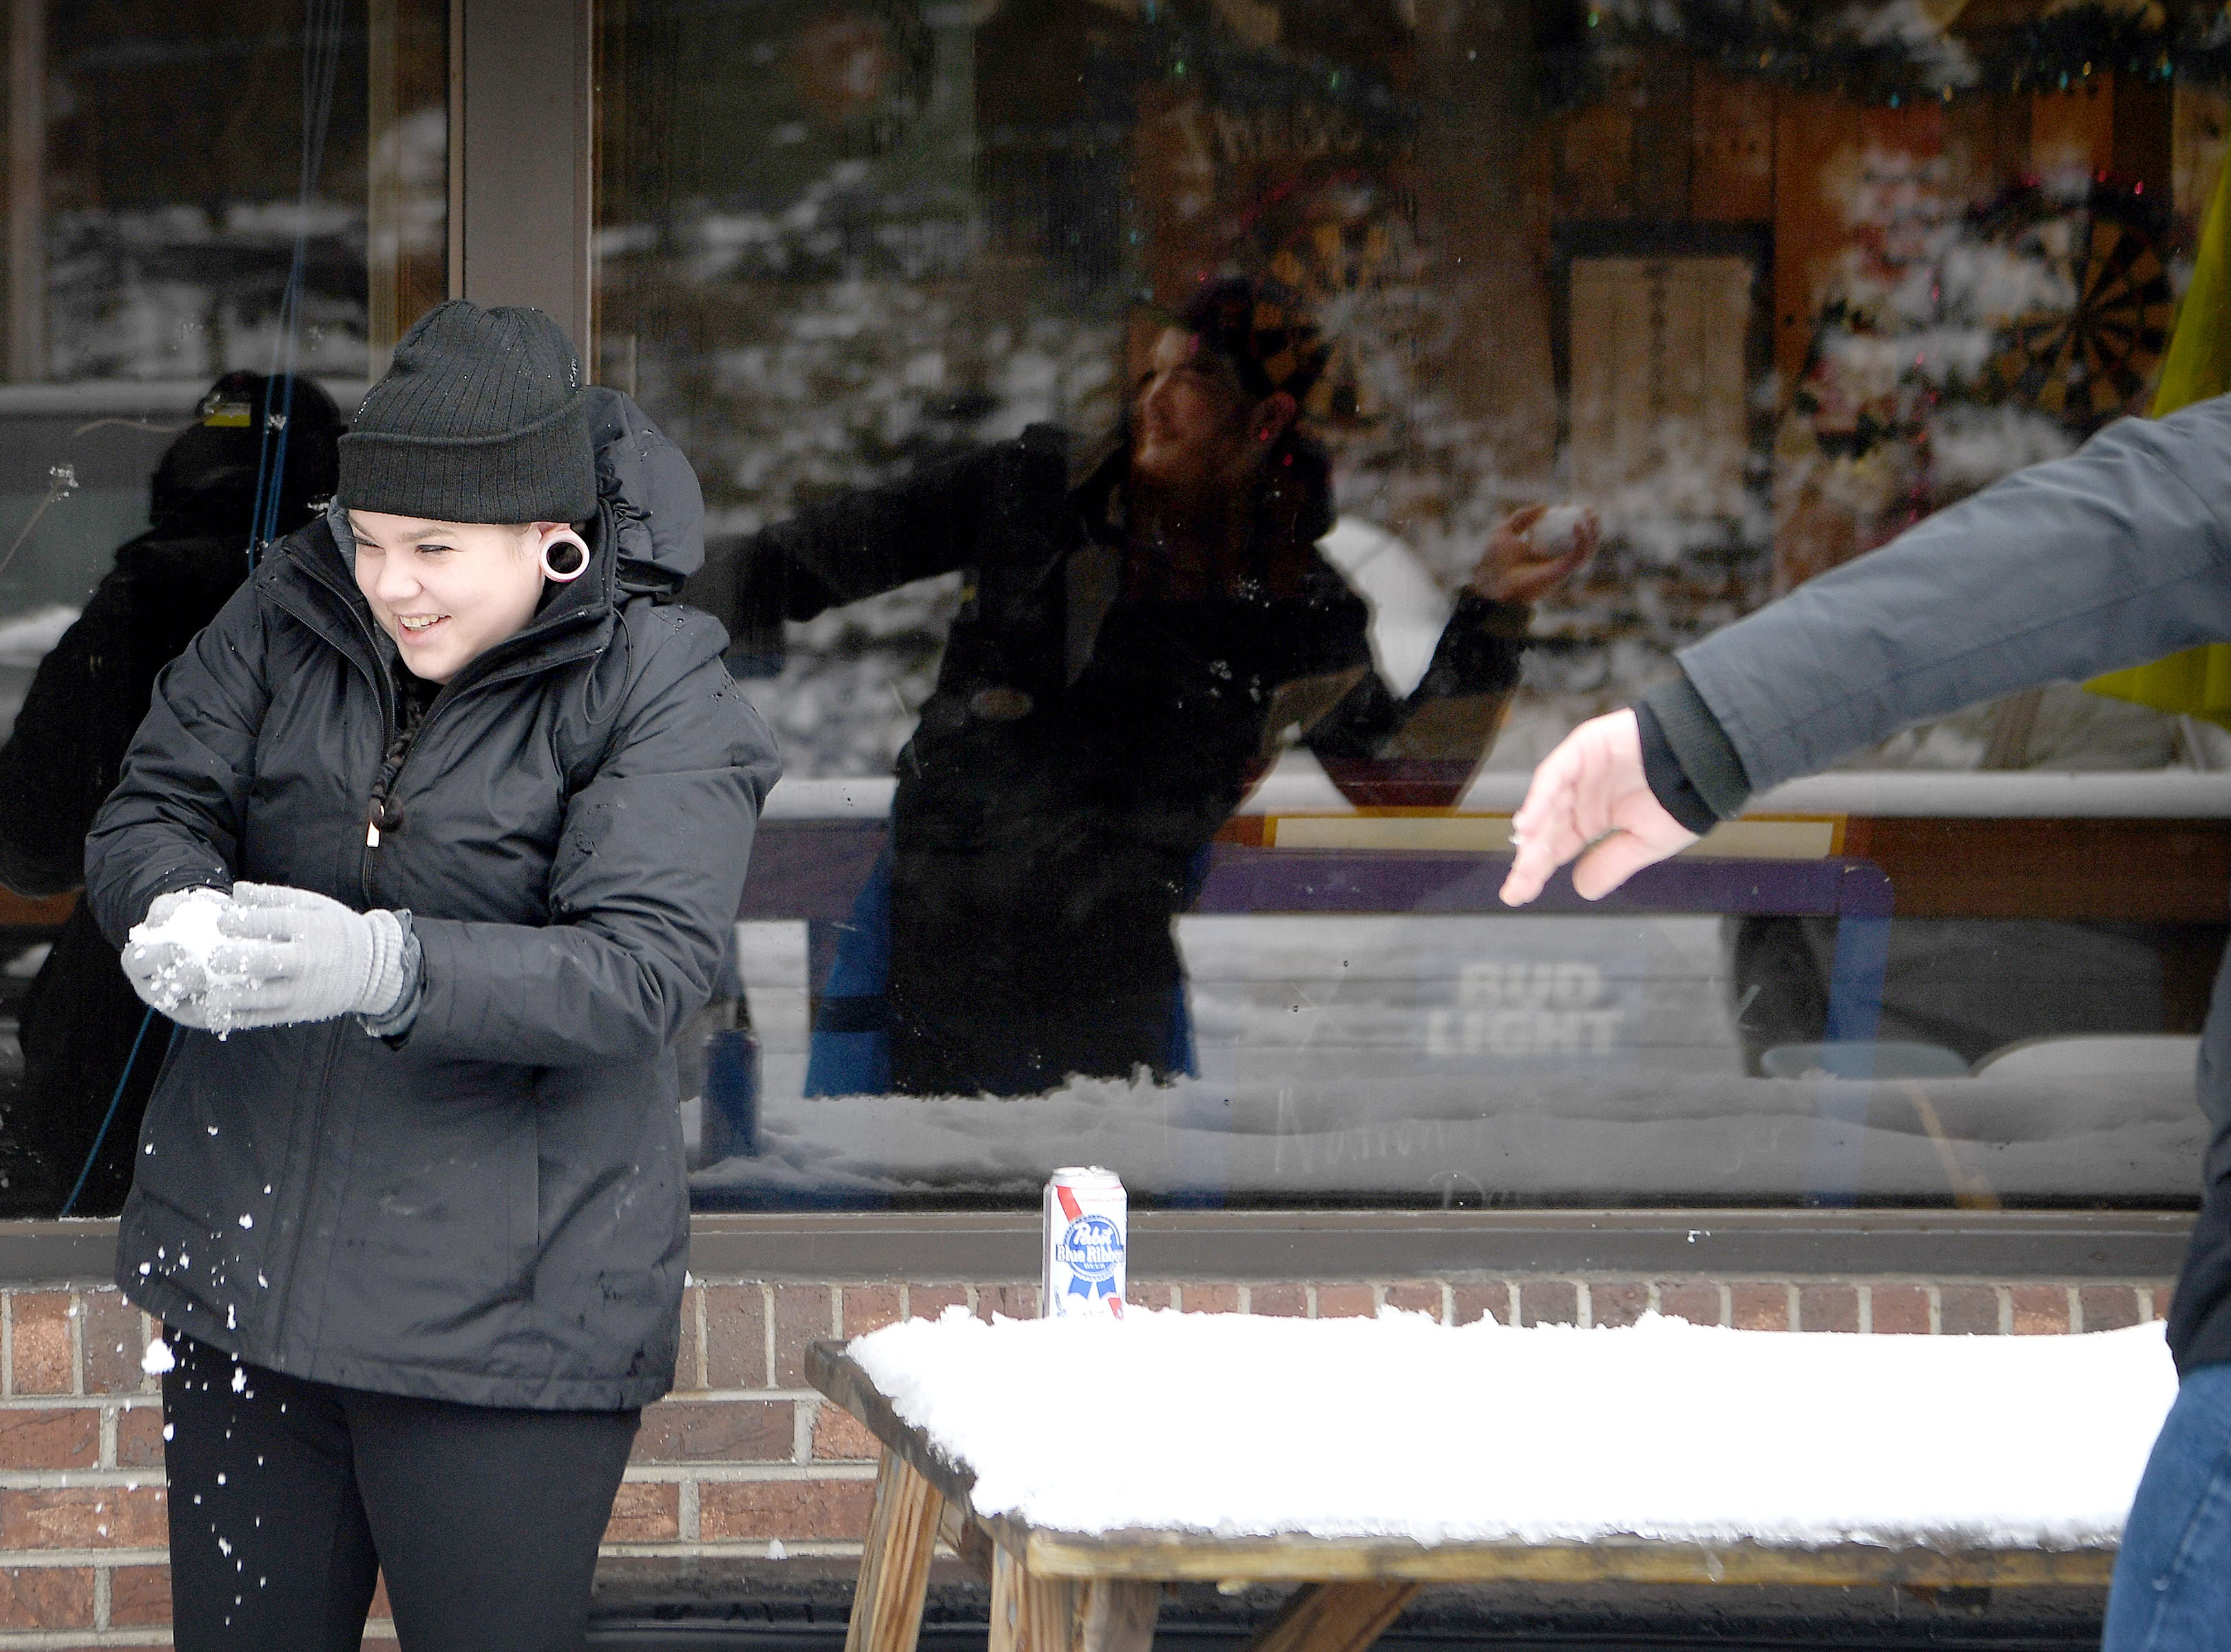 Katie Abney makes a snowball as John Herwig winds up to throw ones as they have a snowball fight on the porch of The Social in East Asheville on Dec. 9, 2018. It was Abney's first time playing in the snow after growing up in Florida.